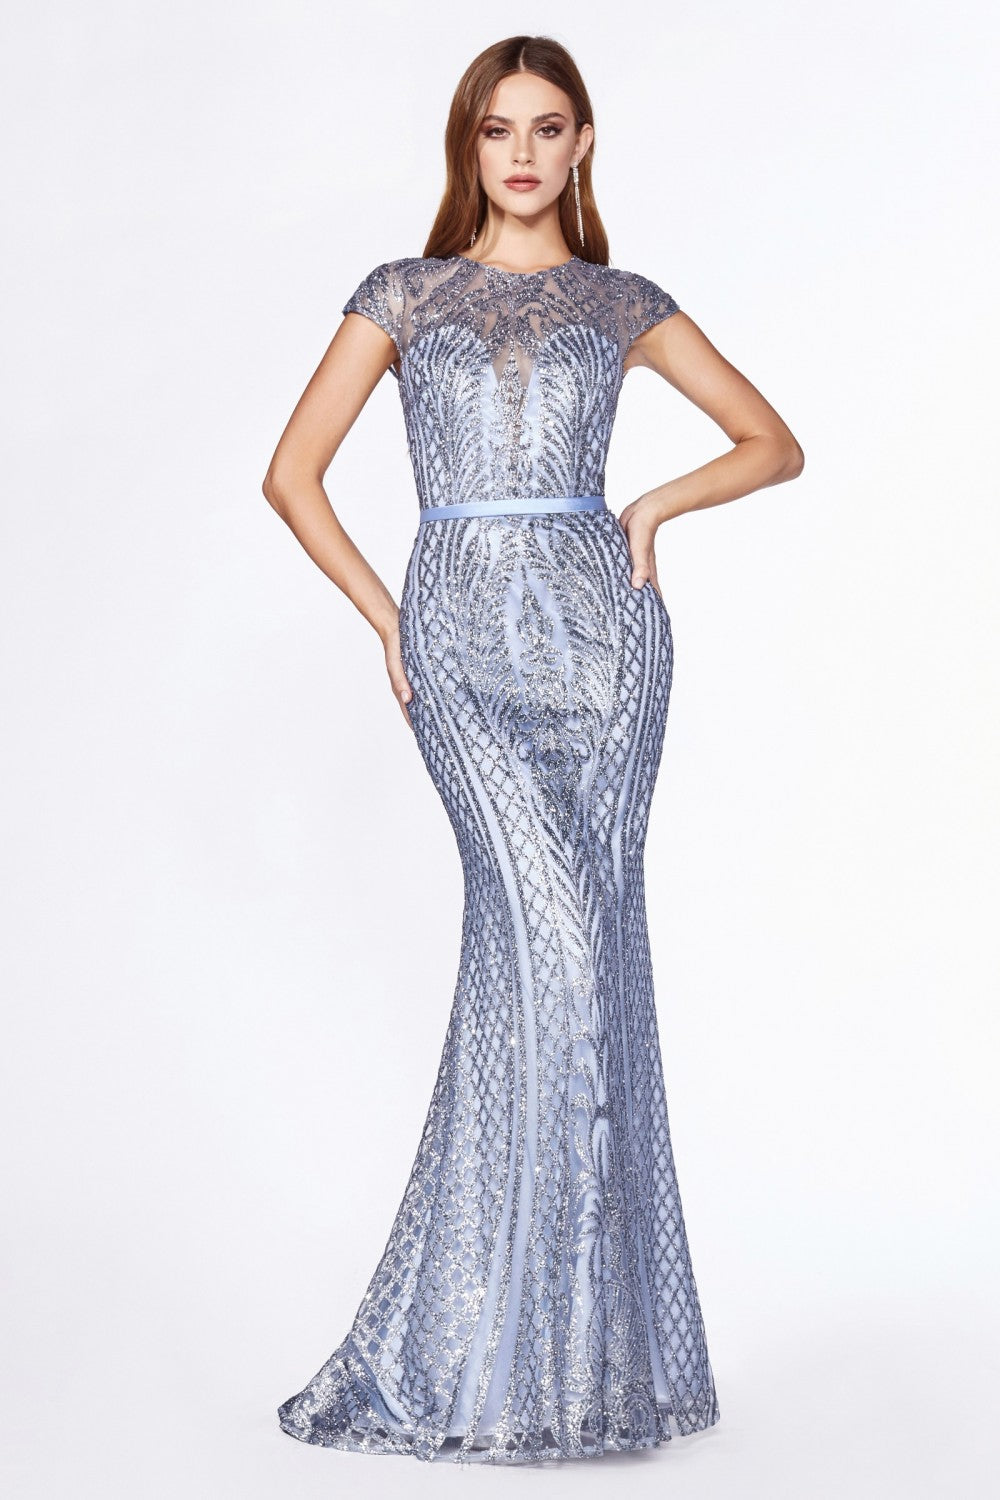 CD J768 - Art Deco Printed Glittery Fit & flare Prom Gown With High Neck Cap Sleeves & Closed Back - Diggz Prom